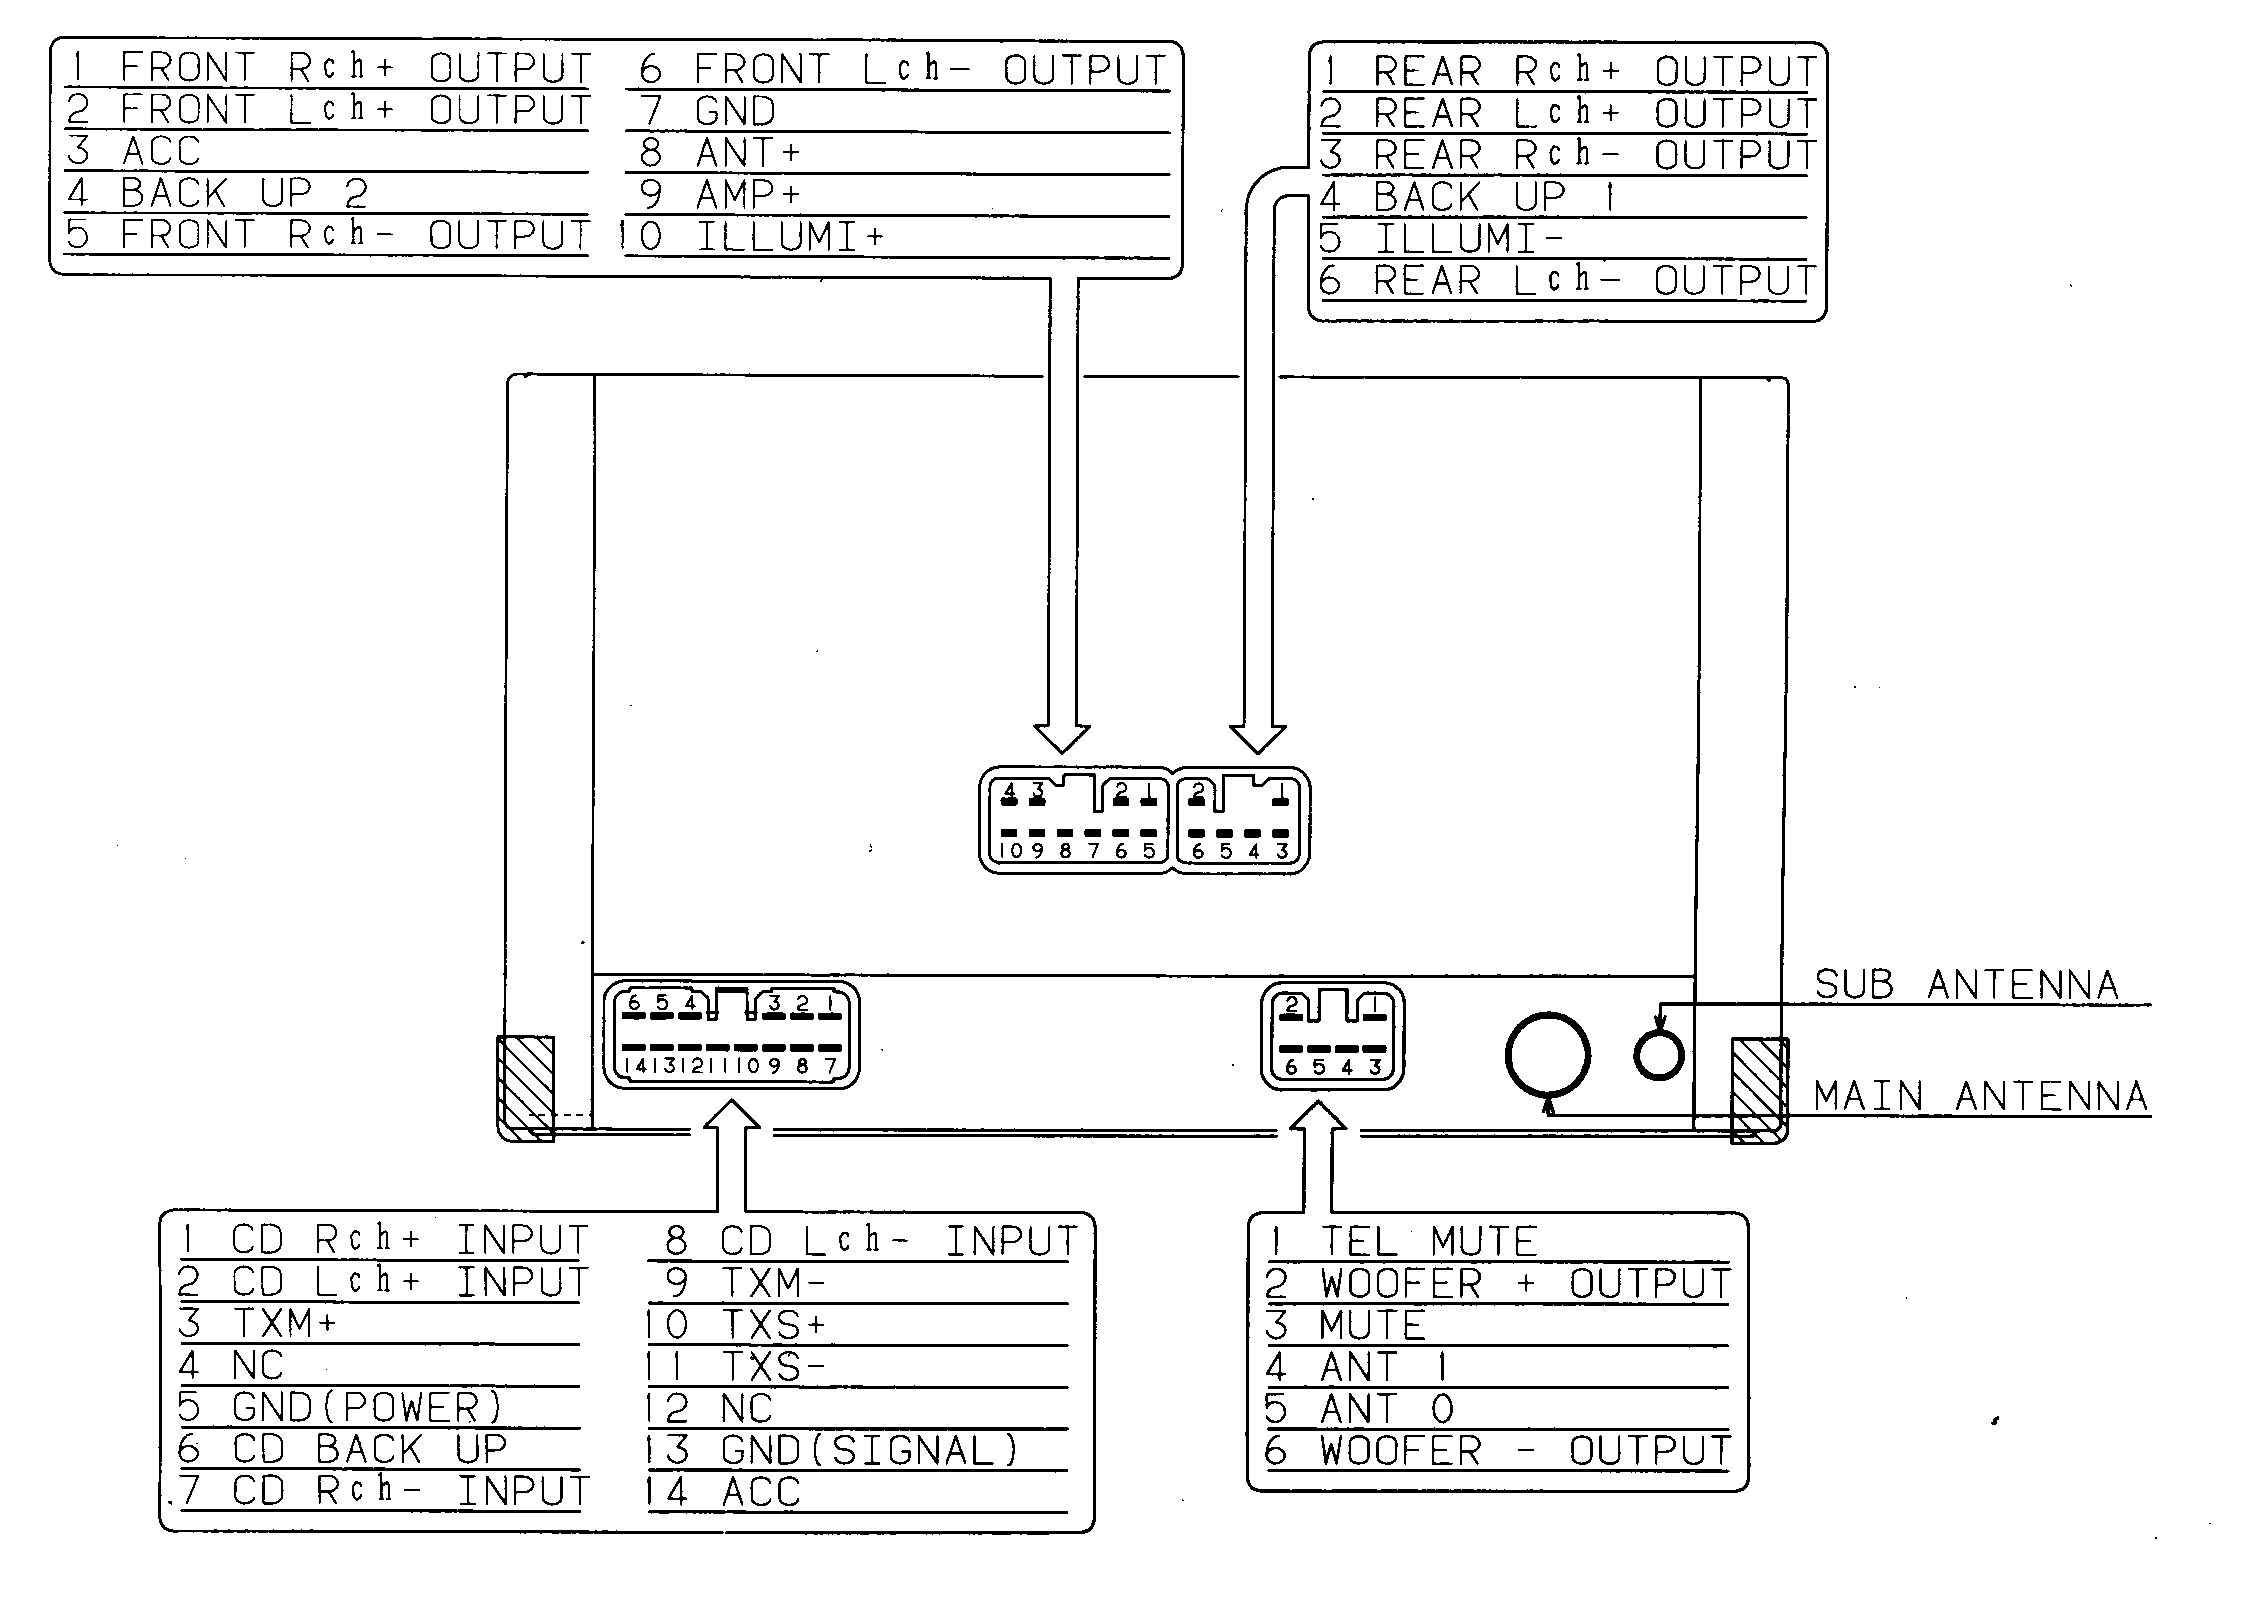 car audio wire diagram codes lexus factory car stereo repair Stereo Wiring Harness Color Codes